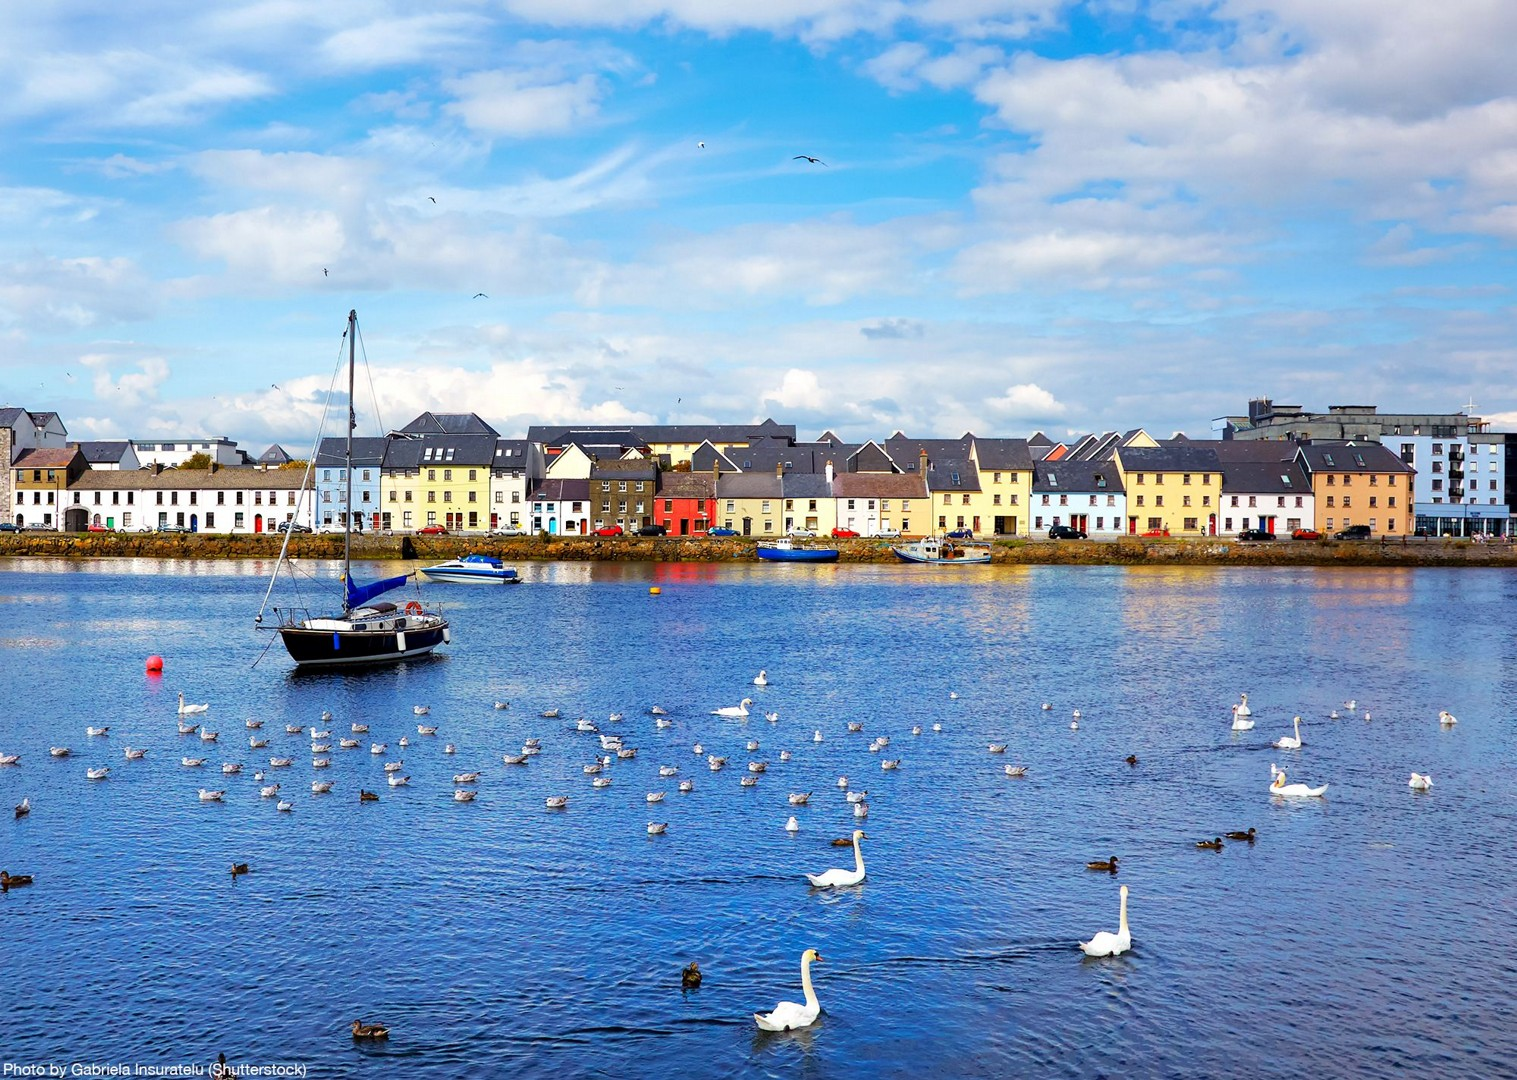 galway-irish-saddle-skedaddle-self-guided-cycling-holiday-in-ireland.jpg - NEW! Ireland - Connemara and the Aran Isles - Leisure Cycling